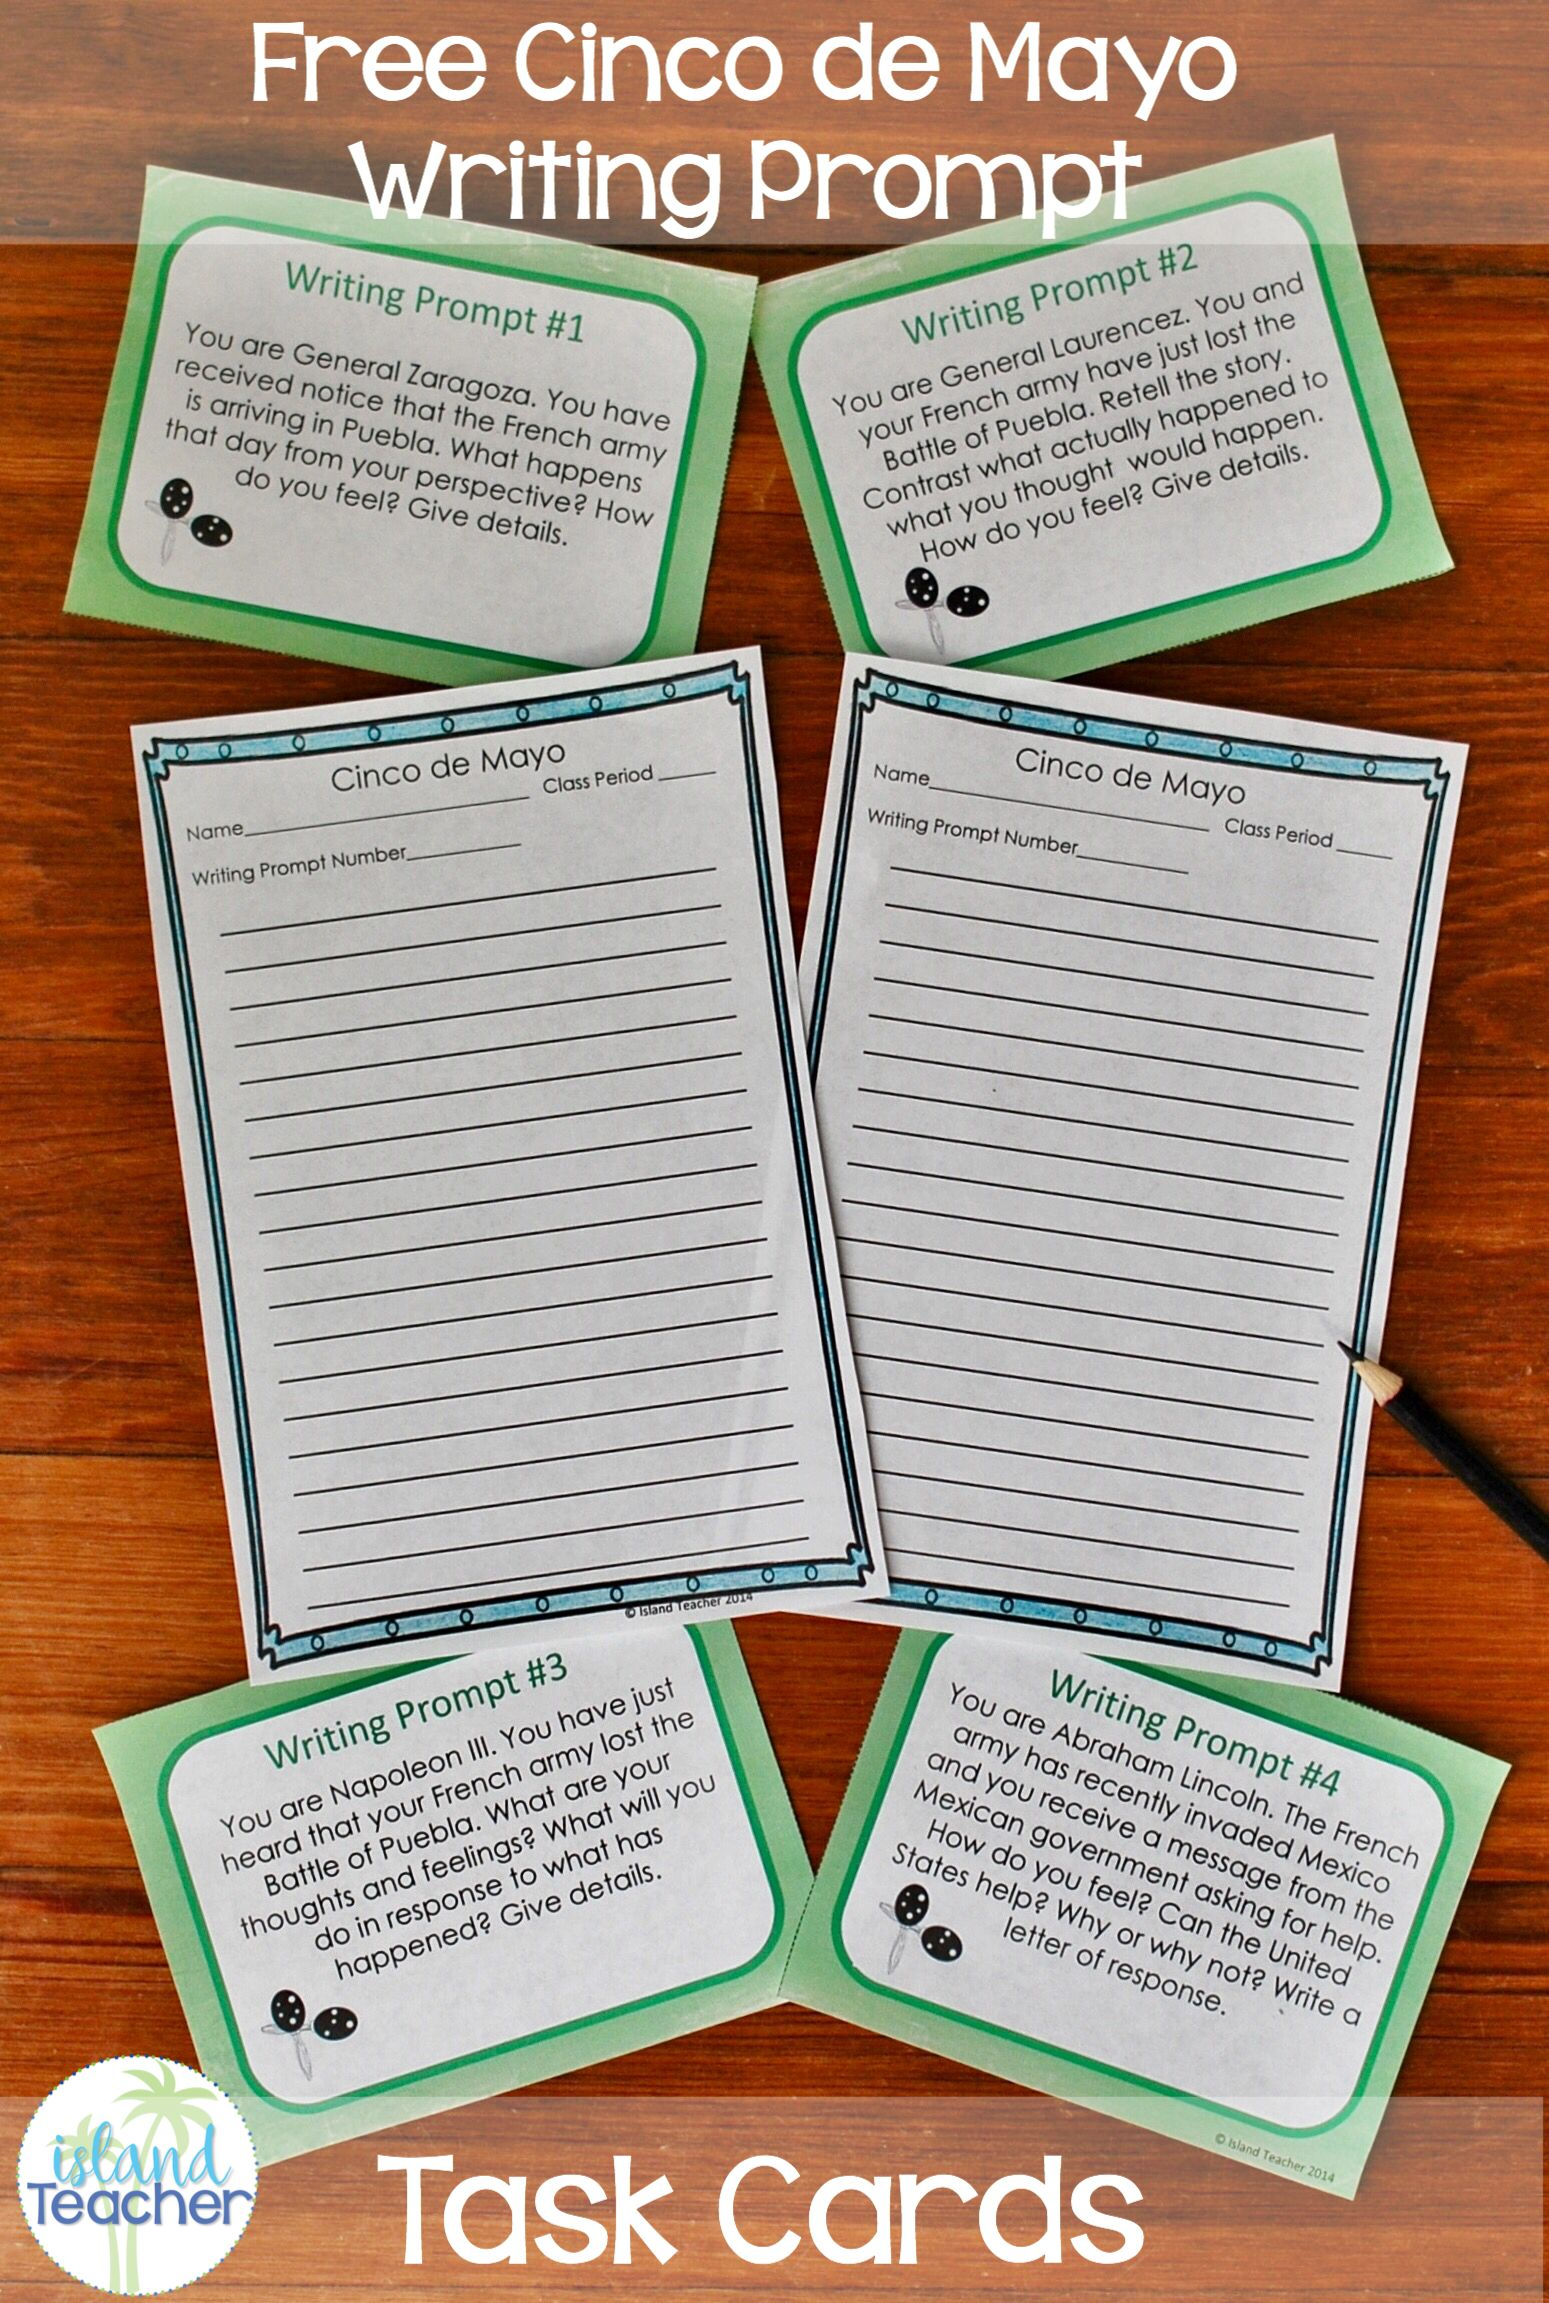 Cinco De Mayo Free Writing Prompt Task Cards With Images How